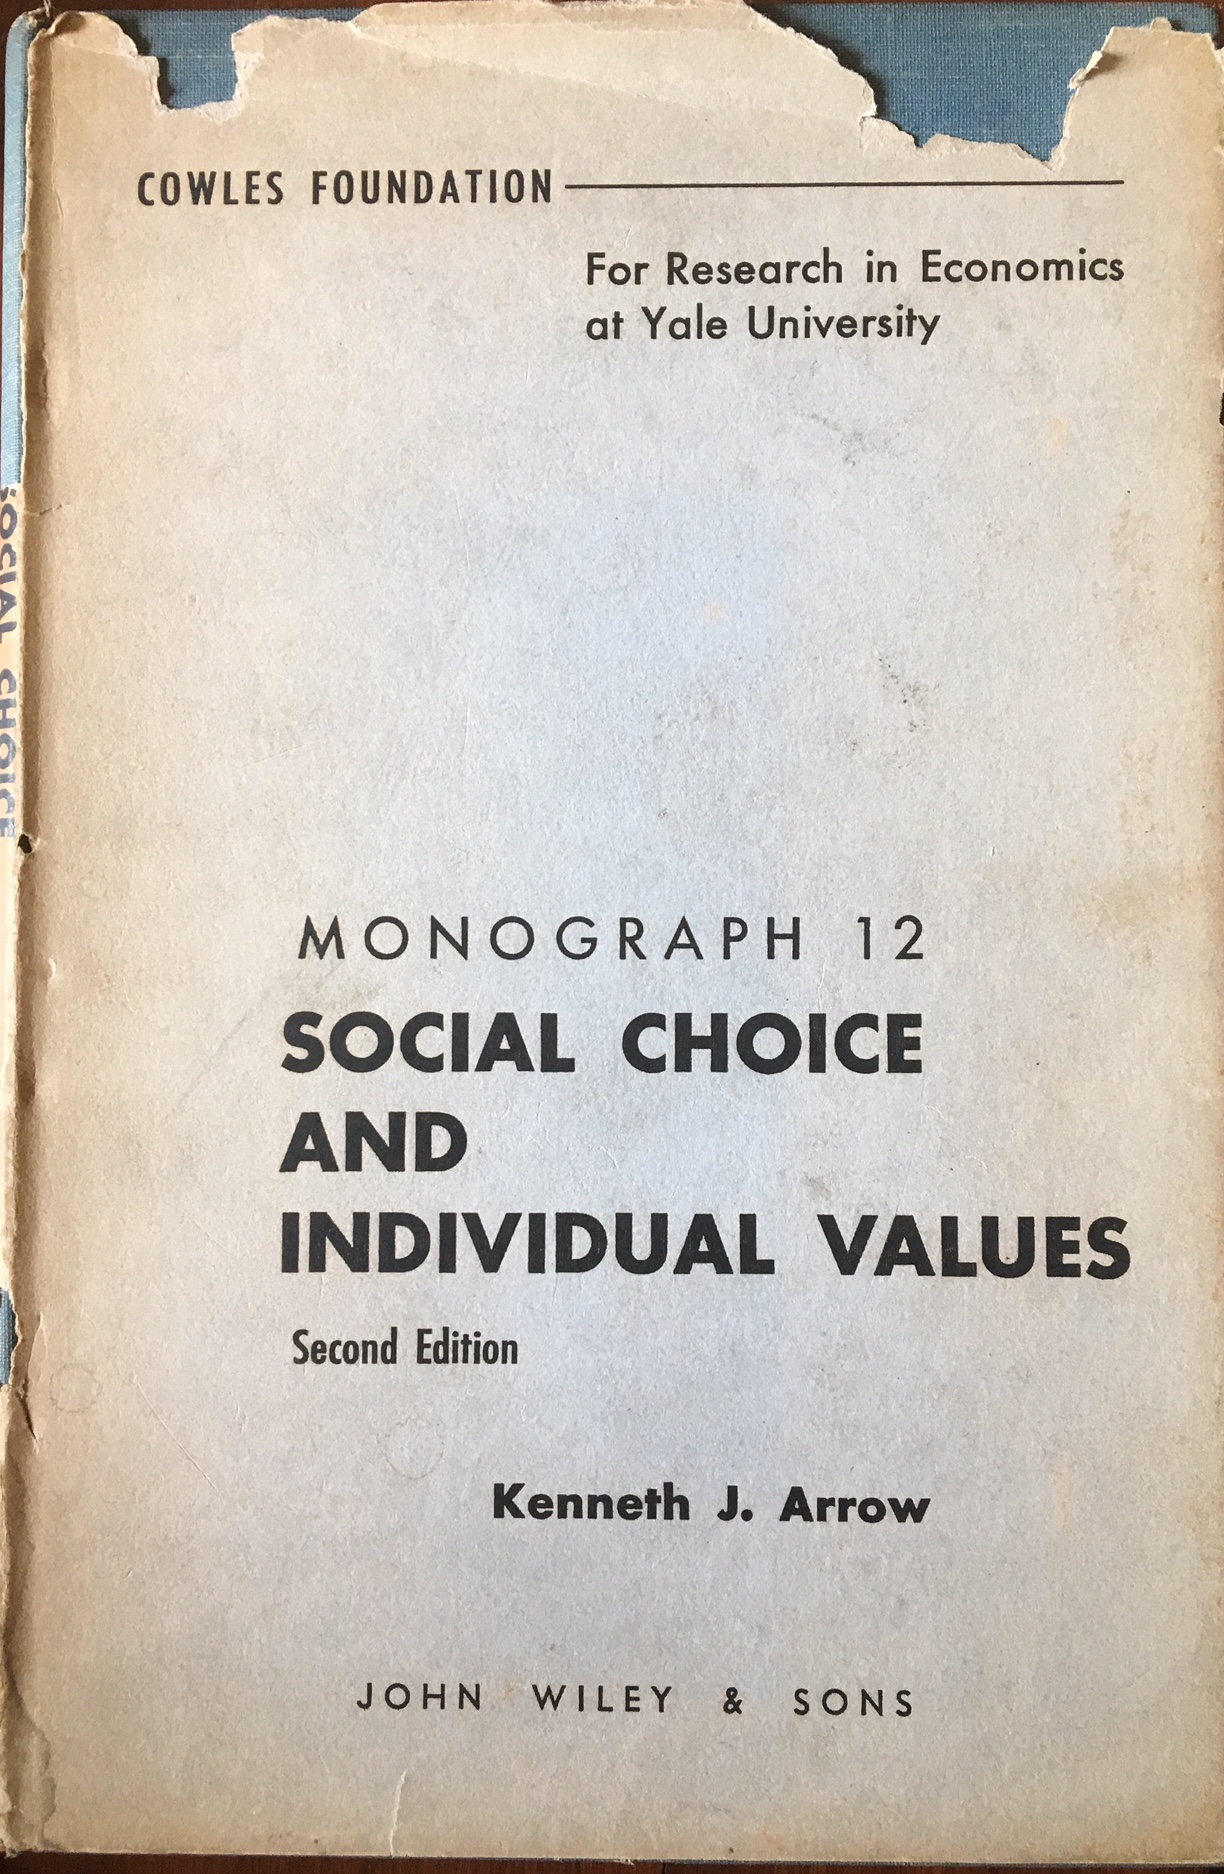 The cover of Kenneth Arrow's path-breaking monograph, Social Choice and Individual Values. Credit: Siddharth Varadarajan/The Wire